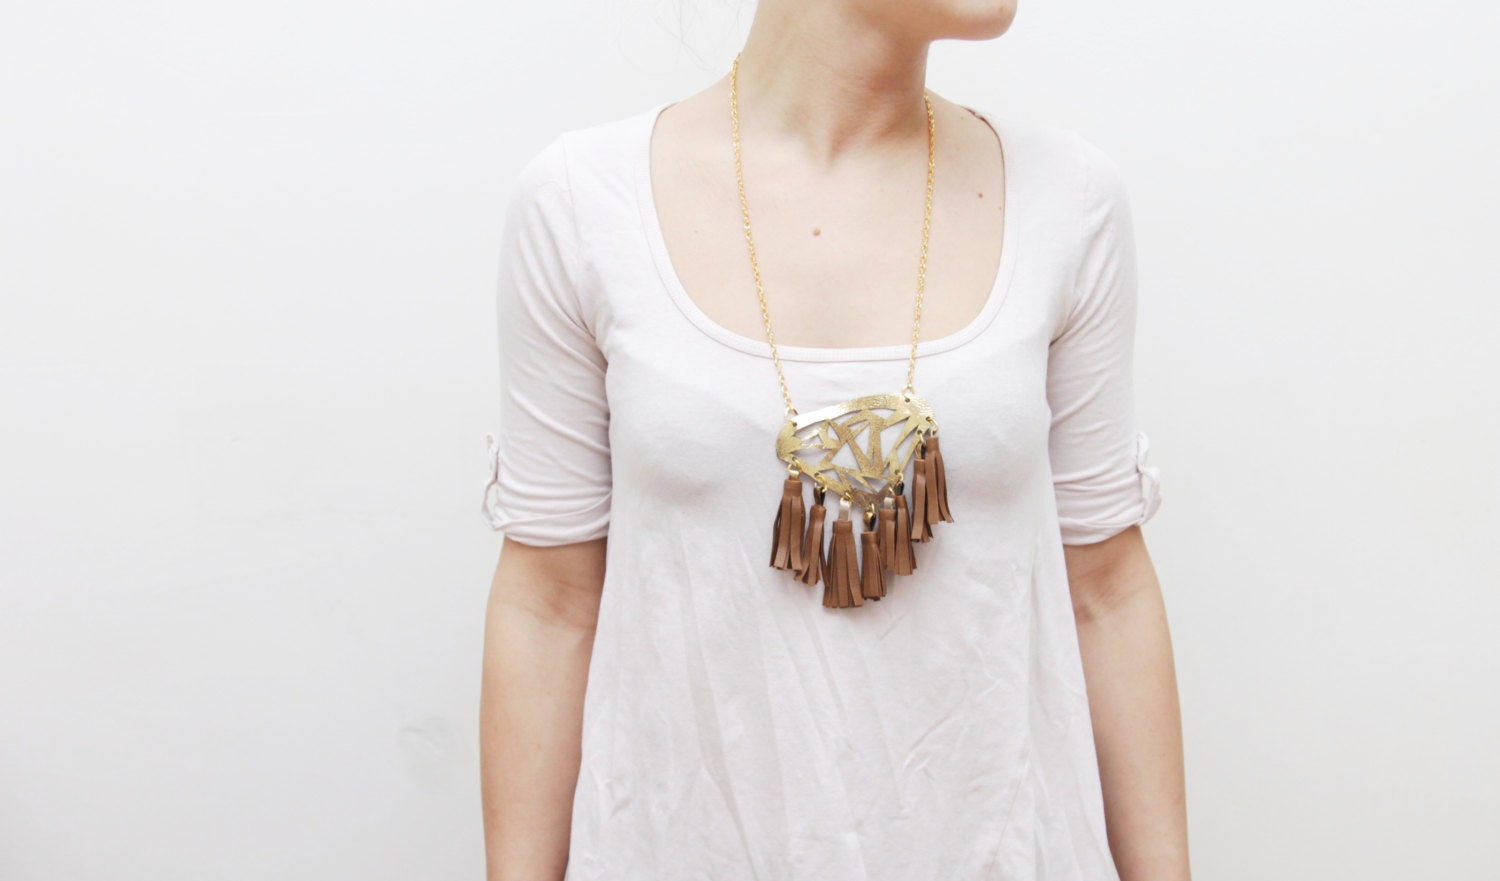 50% off BOHO/ Gold & Brown leather necklace - Ready to Ship - Christmas Sale - DDSLLGirlsStore